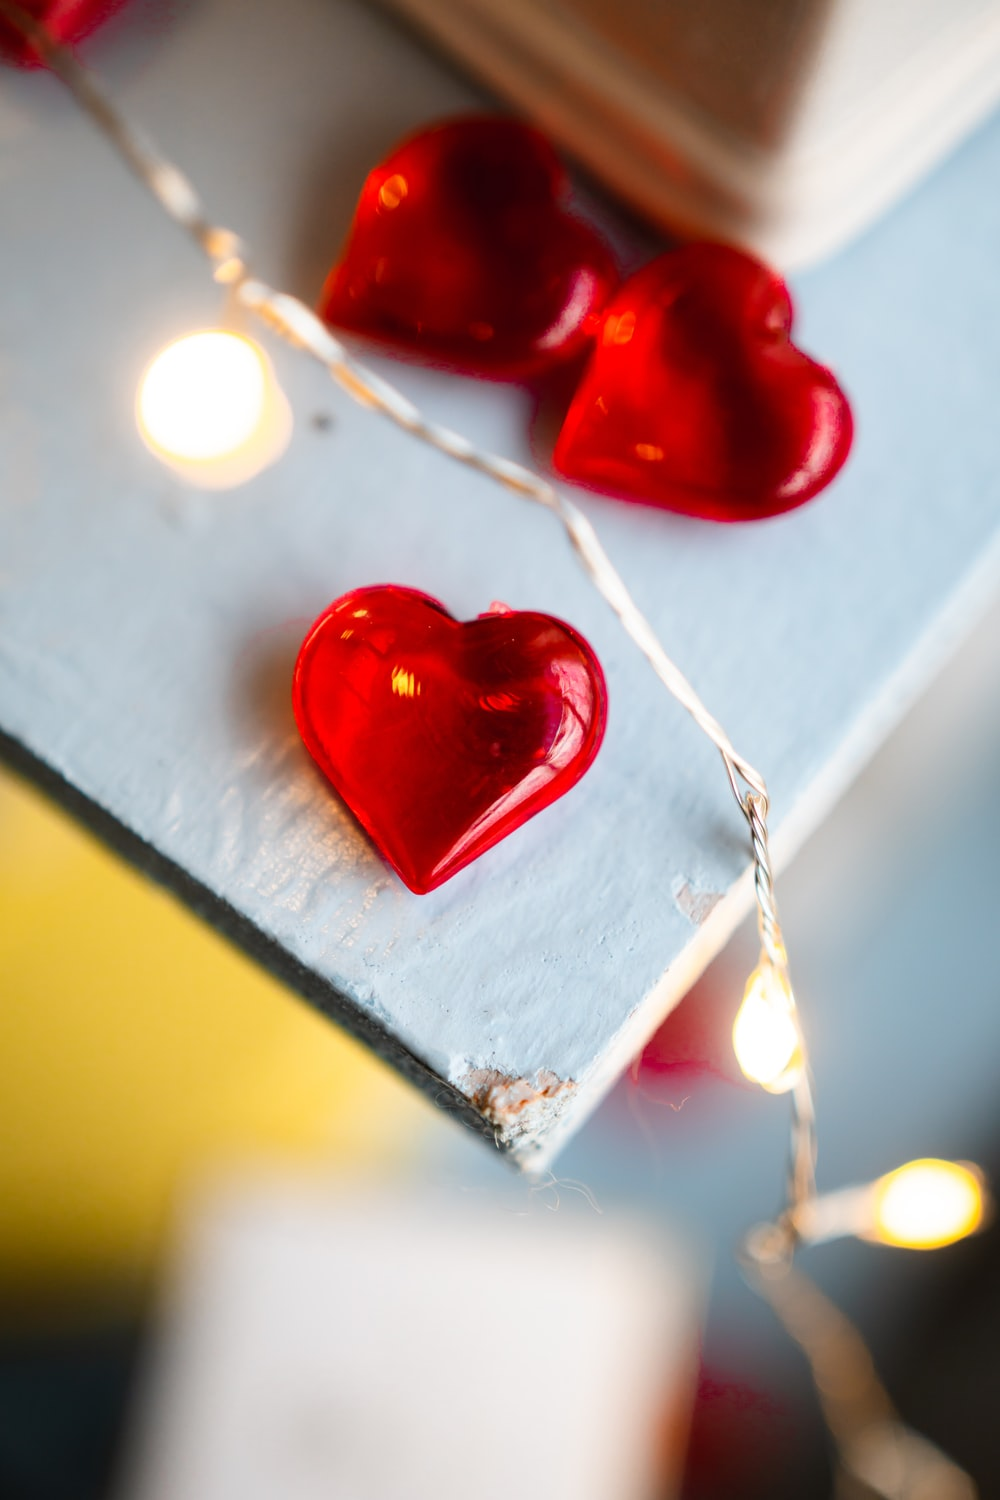 red heart shape candle holder